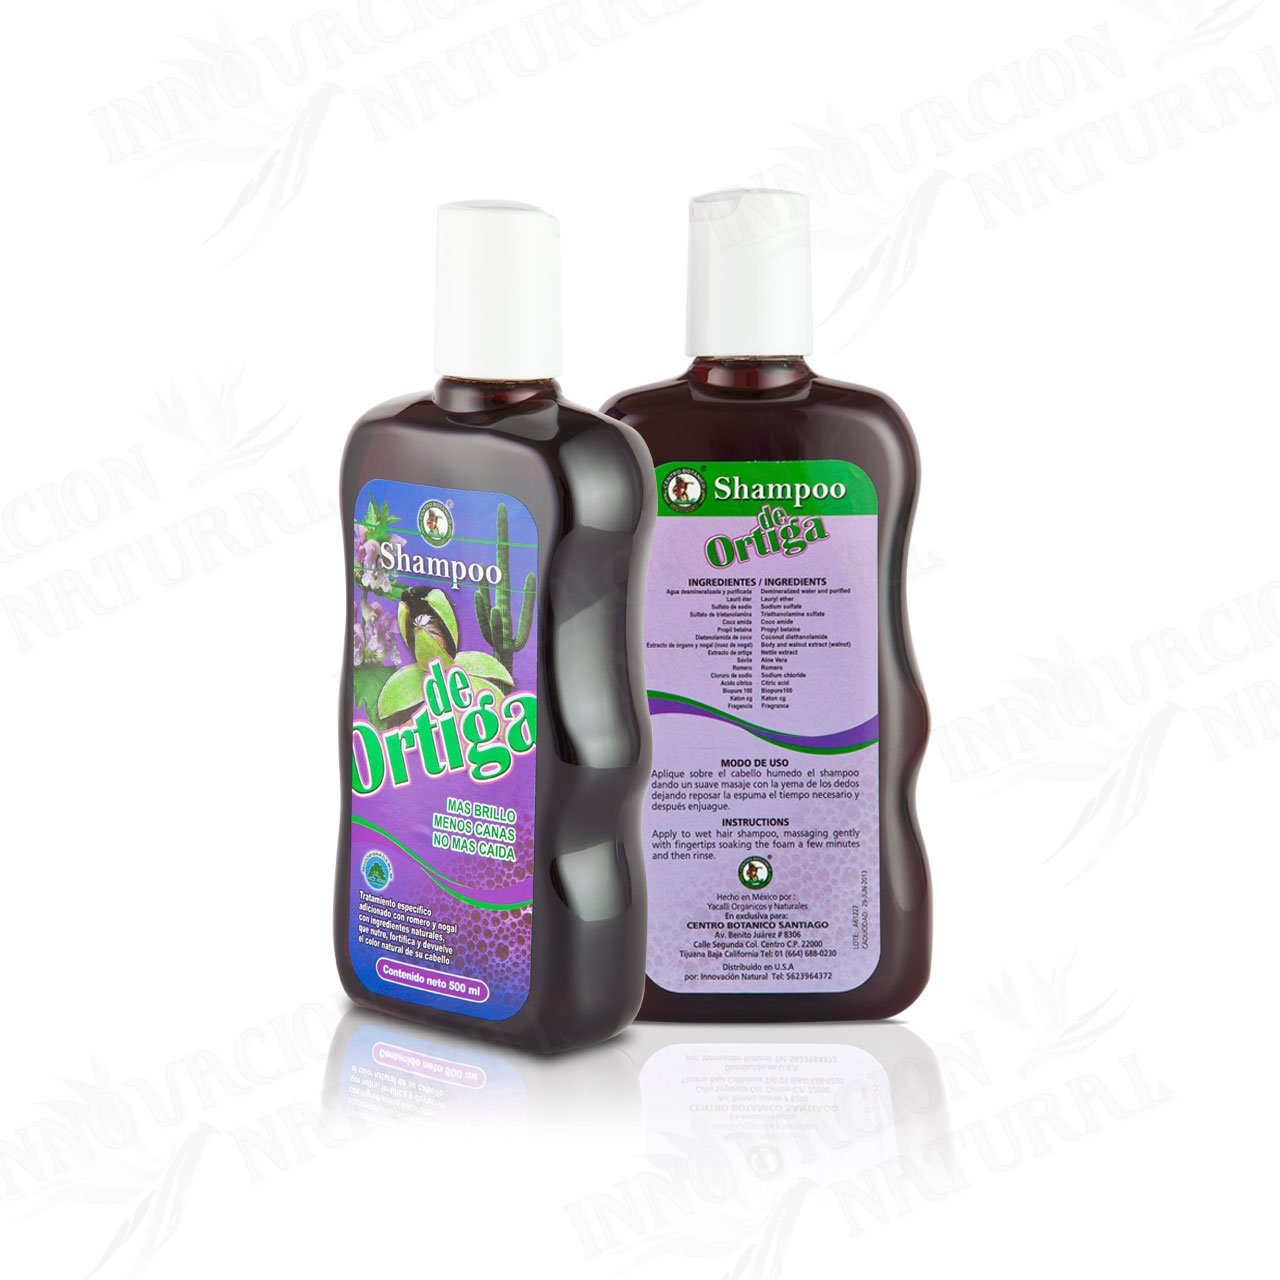 Amazon.com : Ortiga Shampoo Original Para Cre-C er Cabello : Hair Shampoos : Beauty